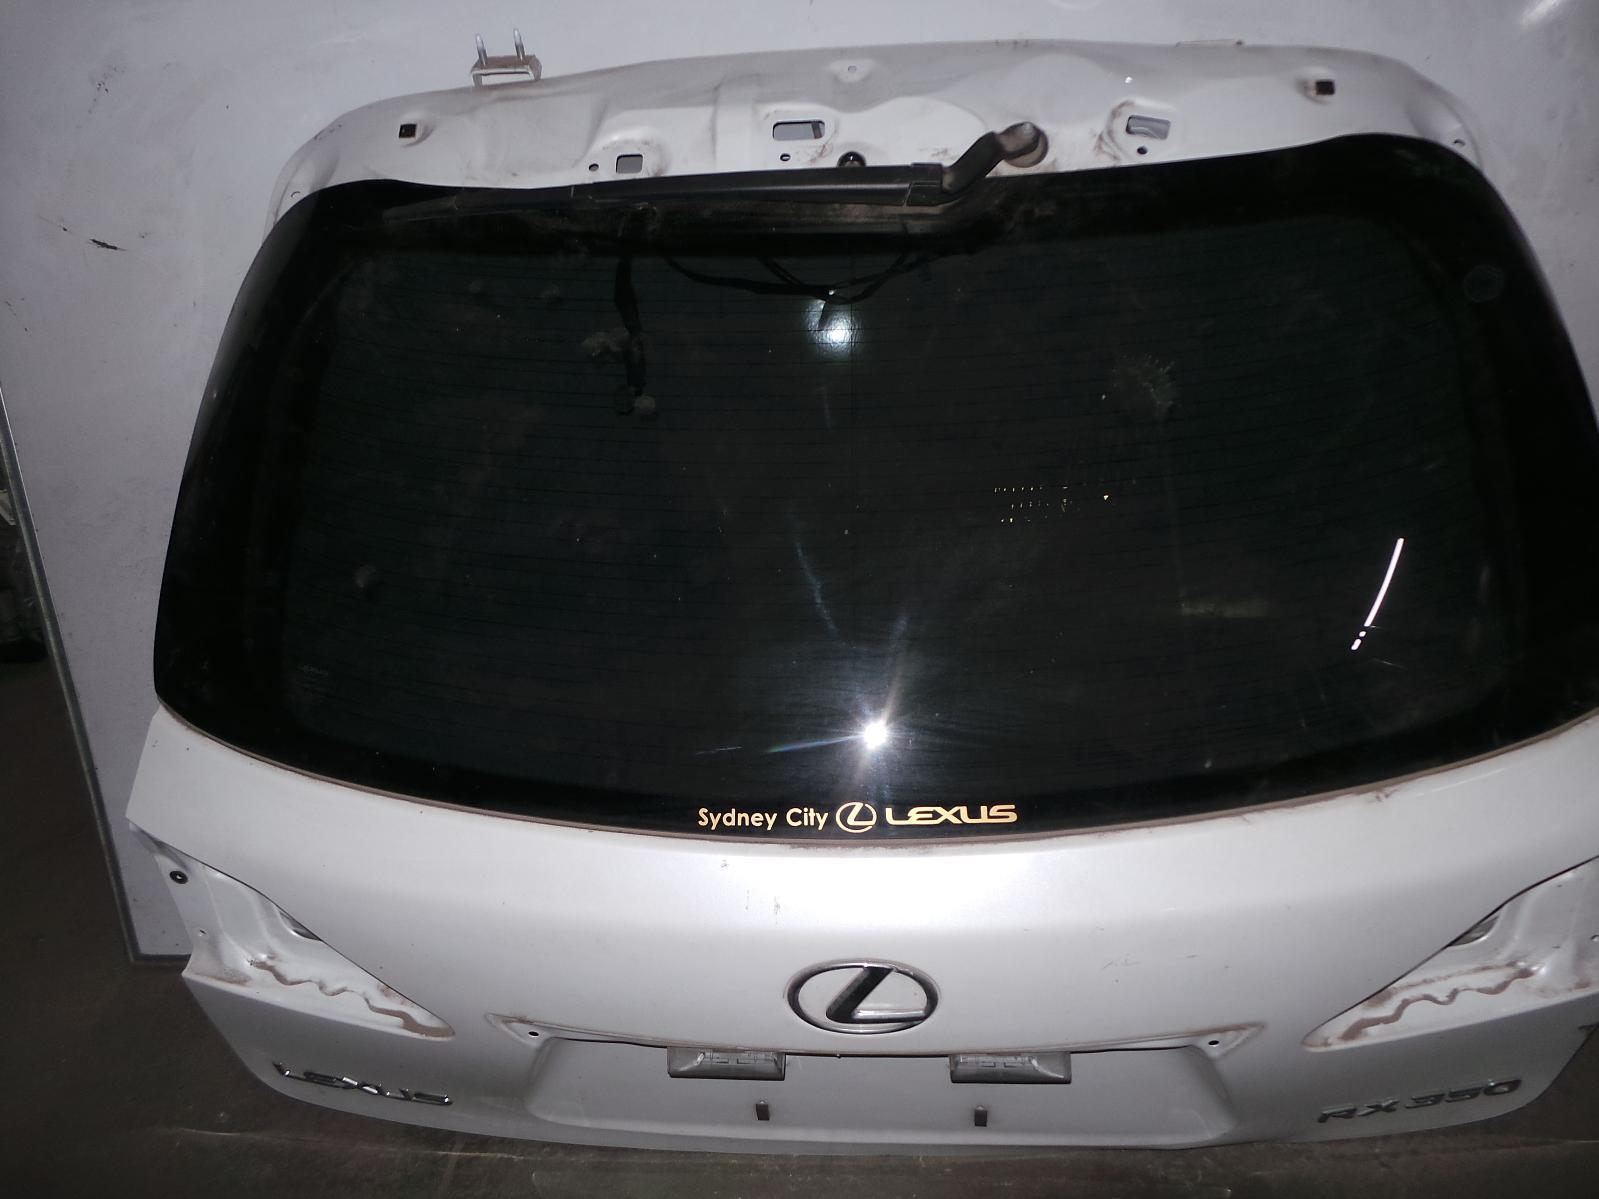 LEXUS RX SERIES, Bootlid/Tailgate, TAILGATE, GSU3/MHU3#, W/ POWER LIFTGATE, REV CAM & NAV SYSTEM TYPE, 03/06-02/09